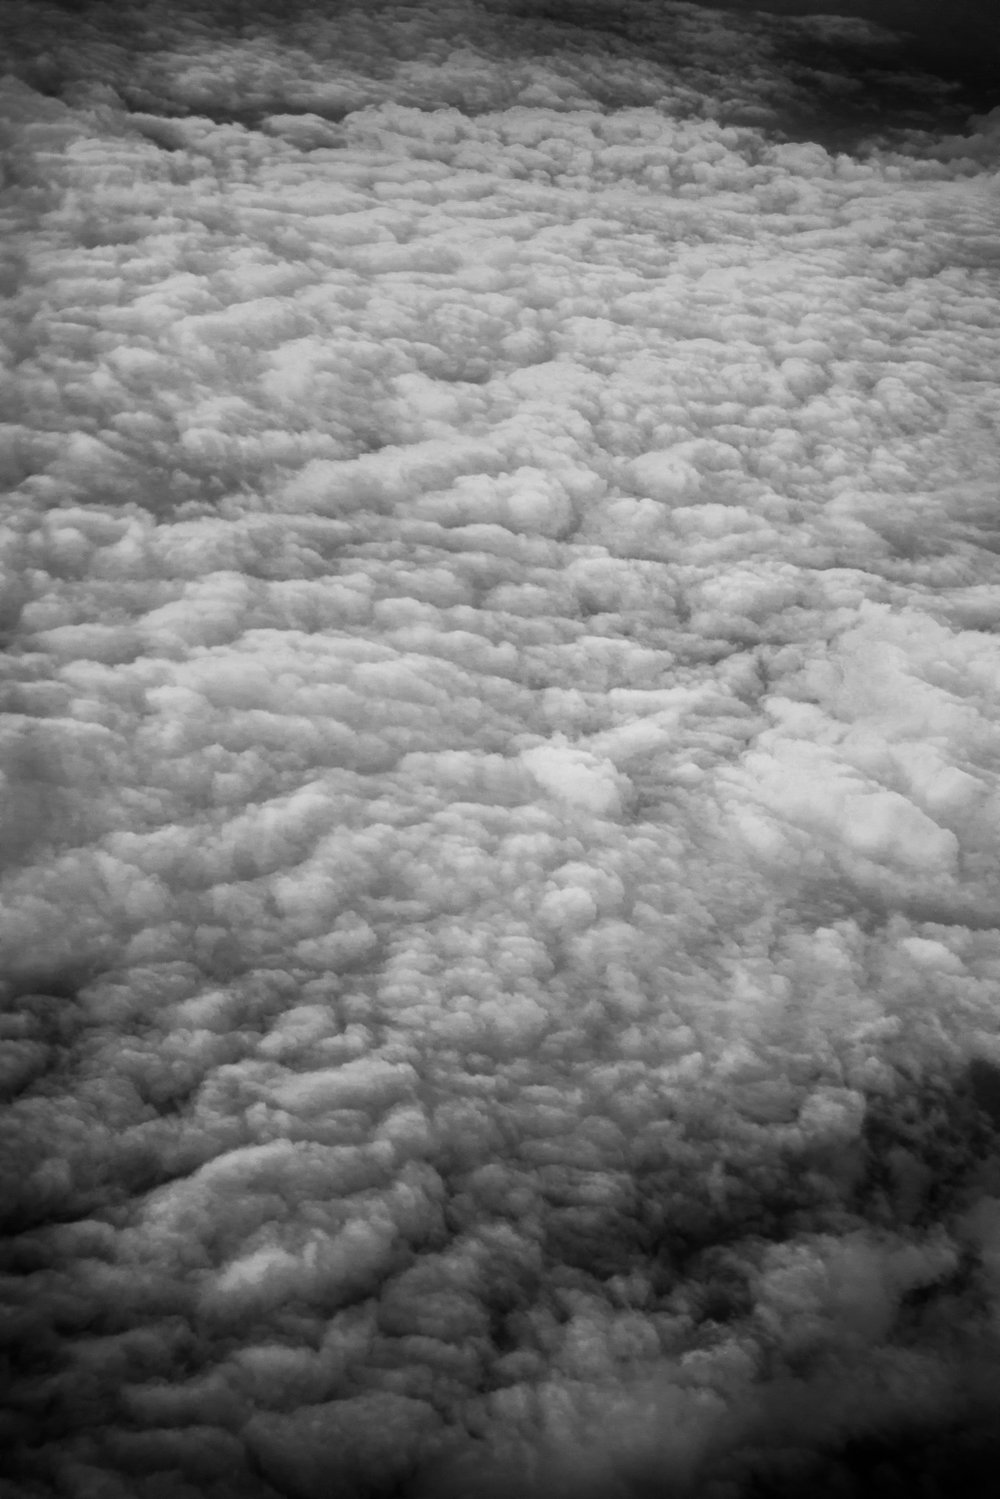 Cloud field from Delta Airlines, ©Robert Brian Welkie 2016